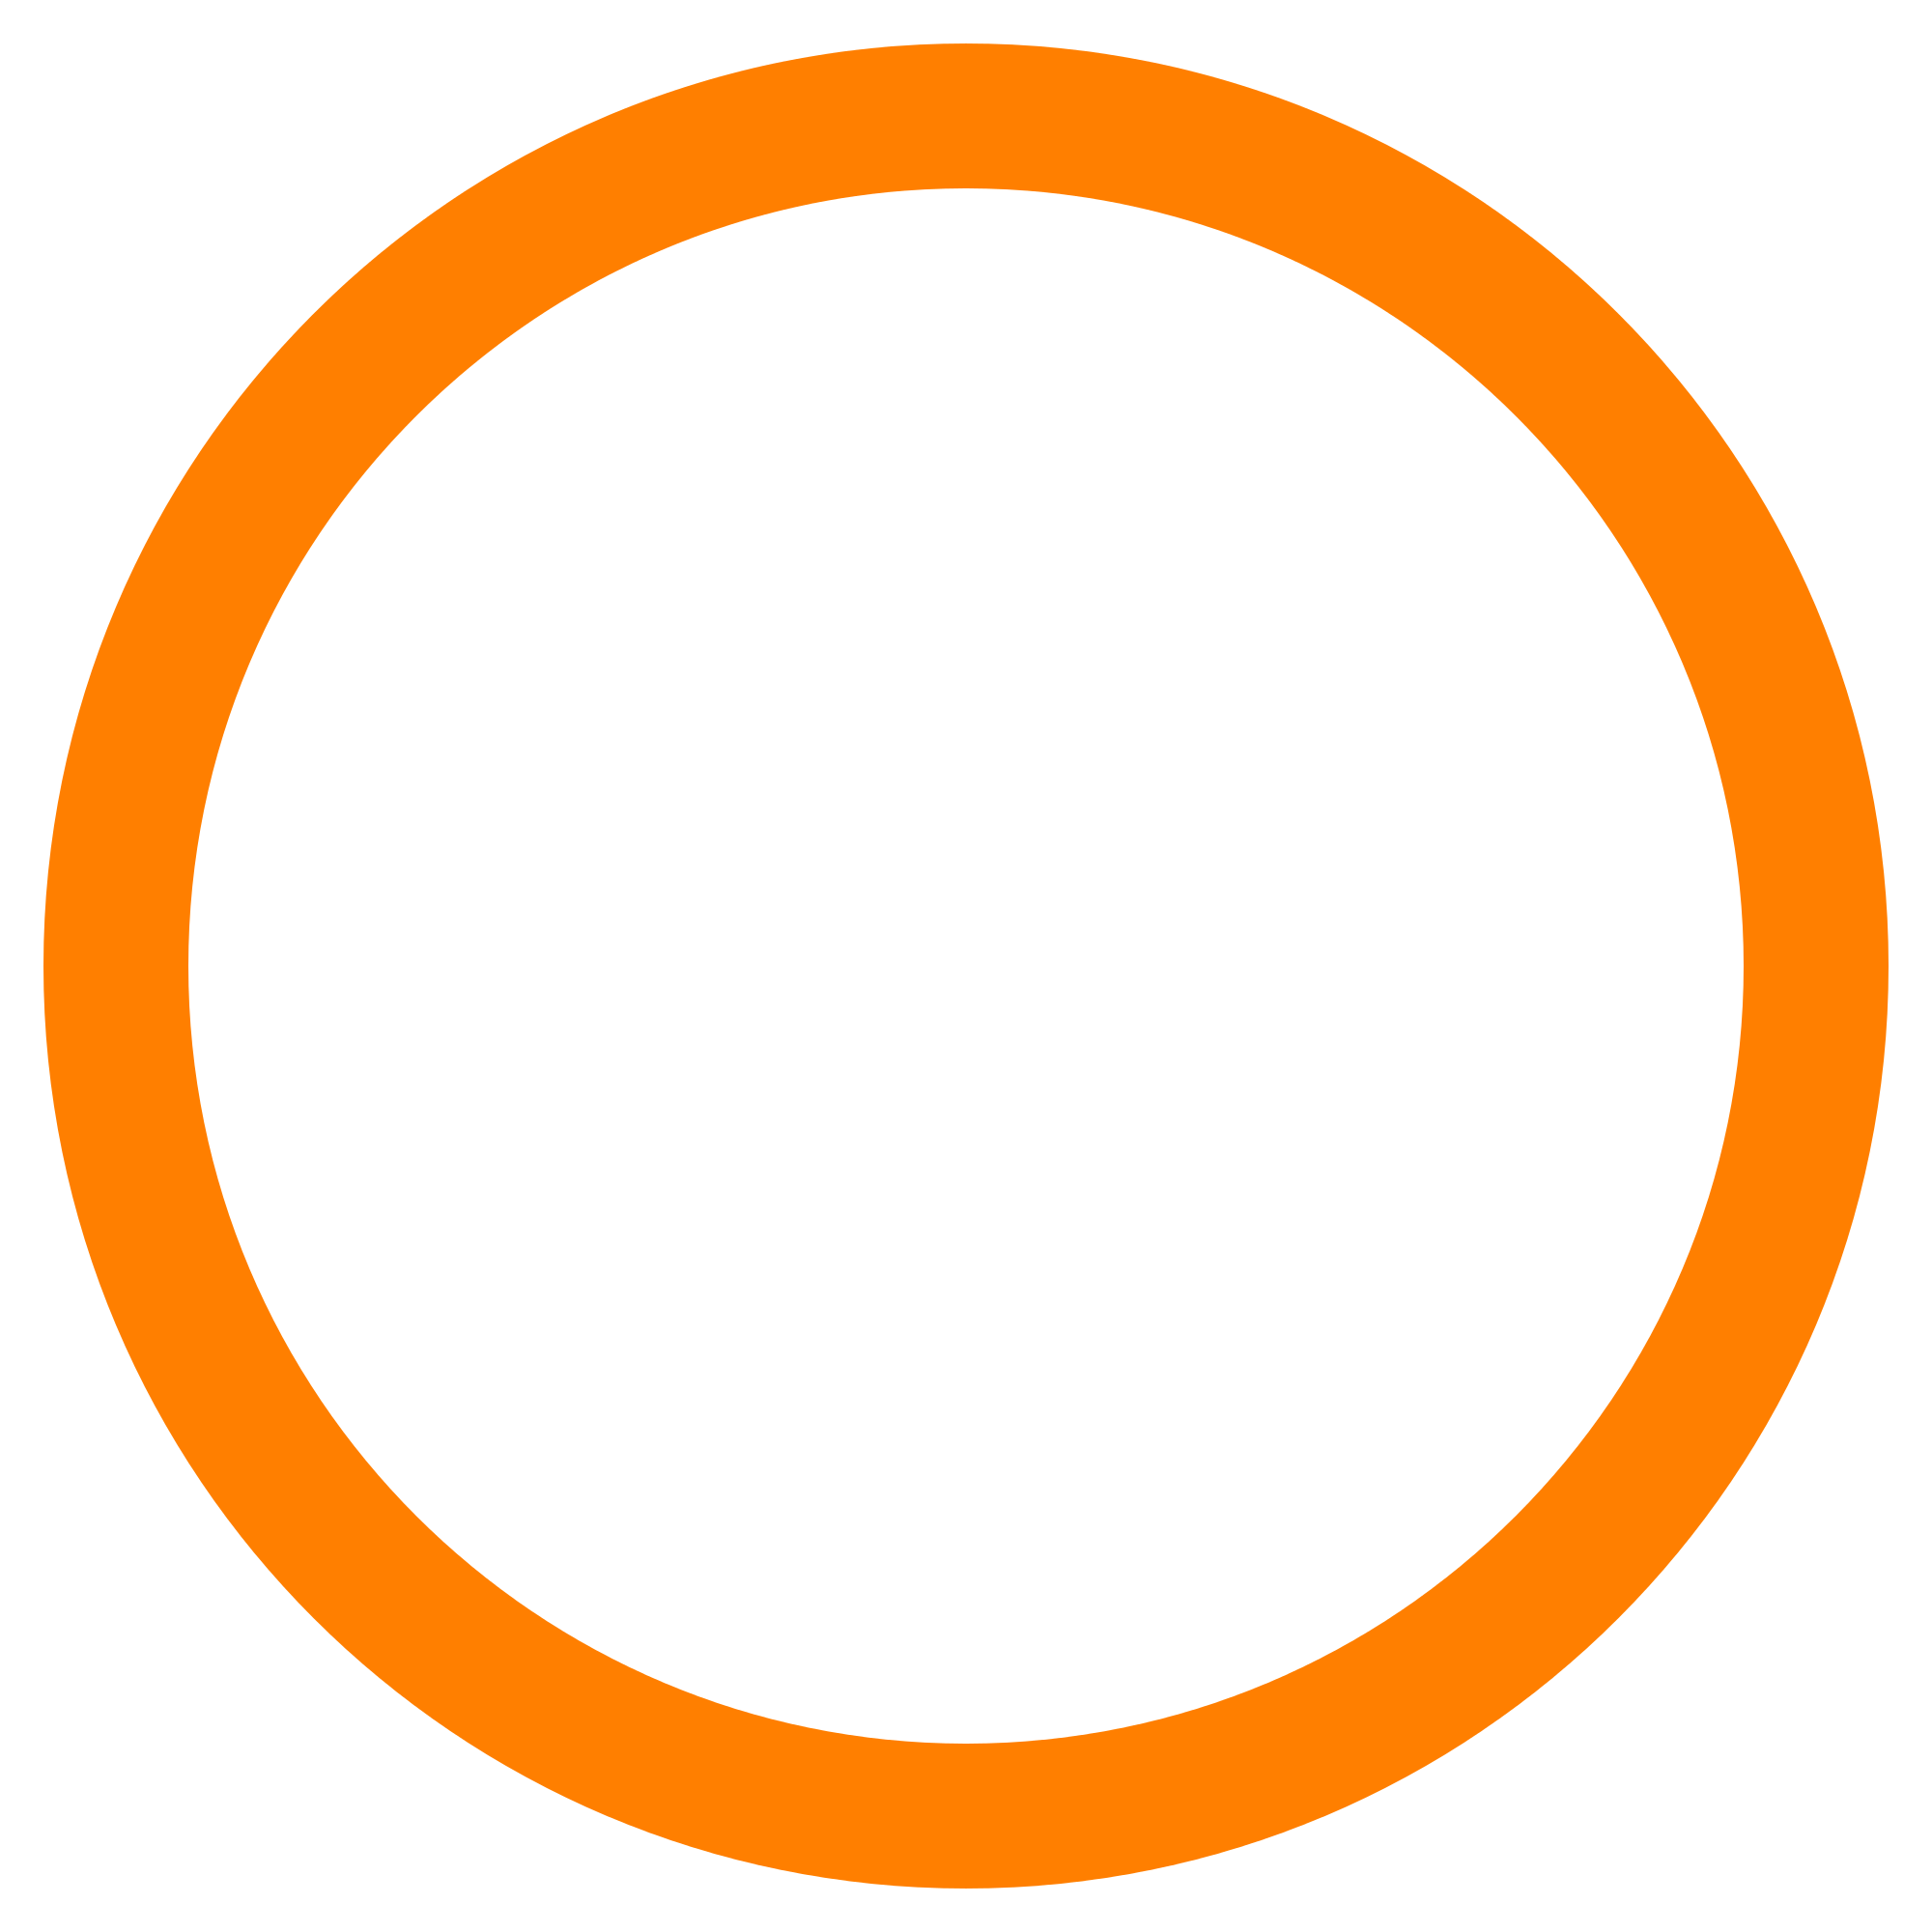 Circle clipart hollow. File orange svg wikimedia